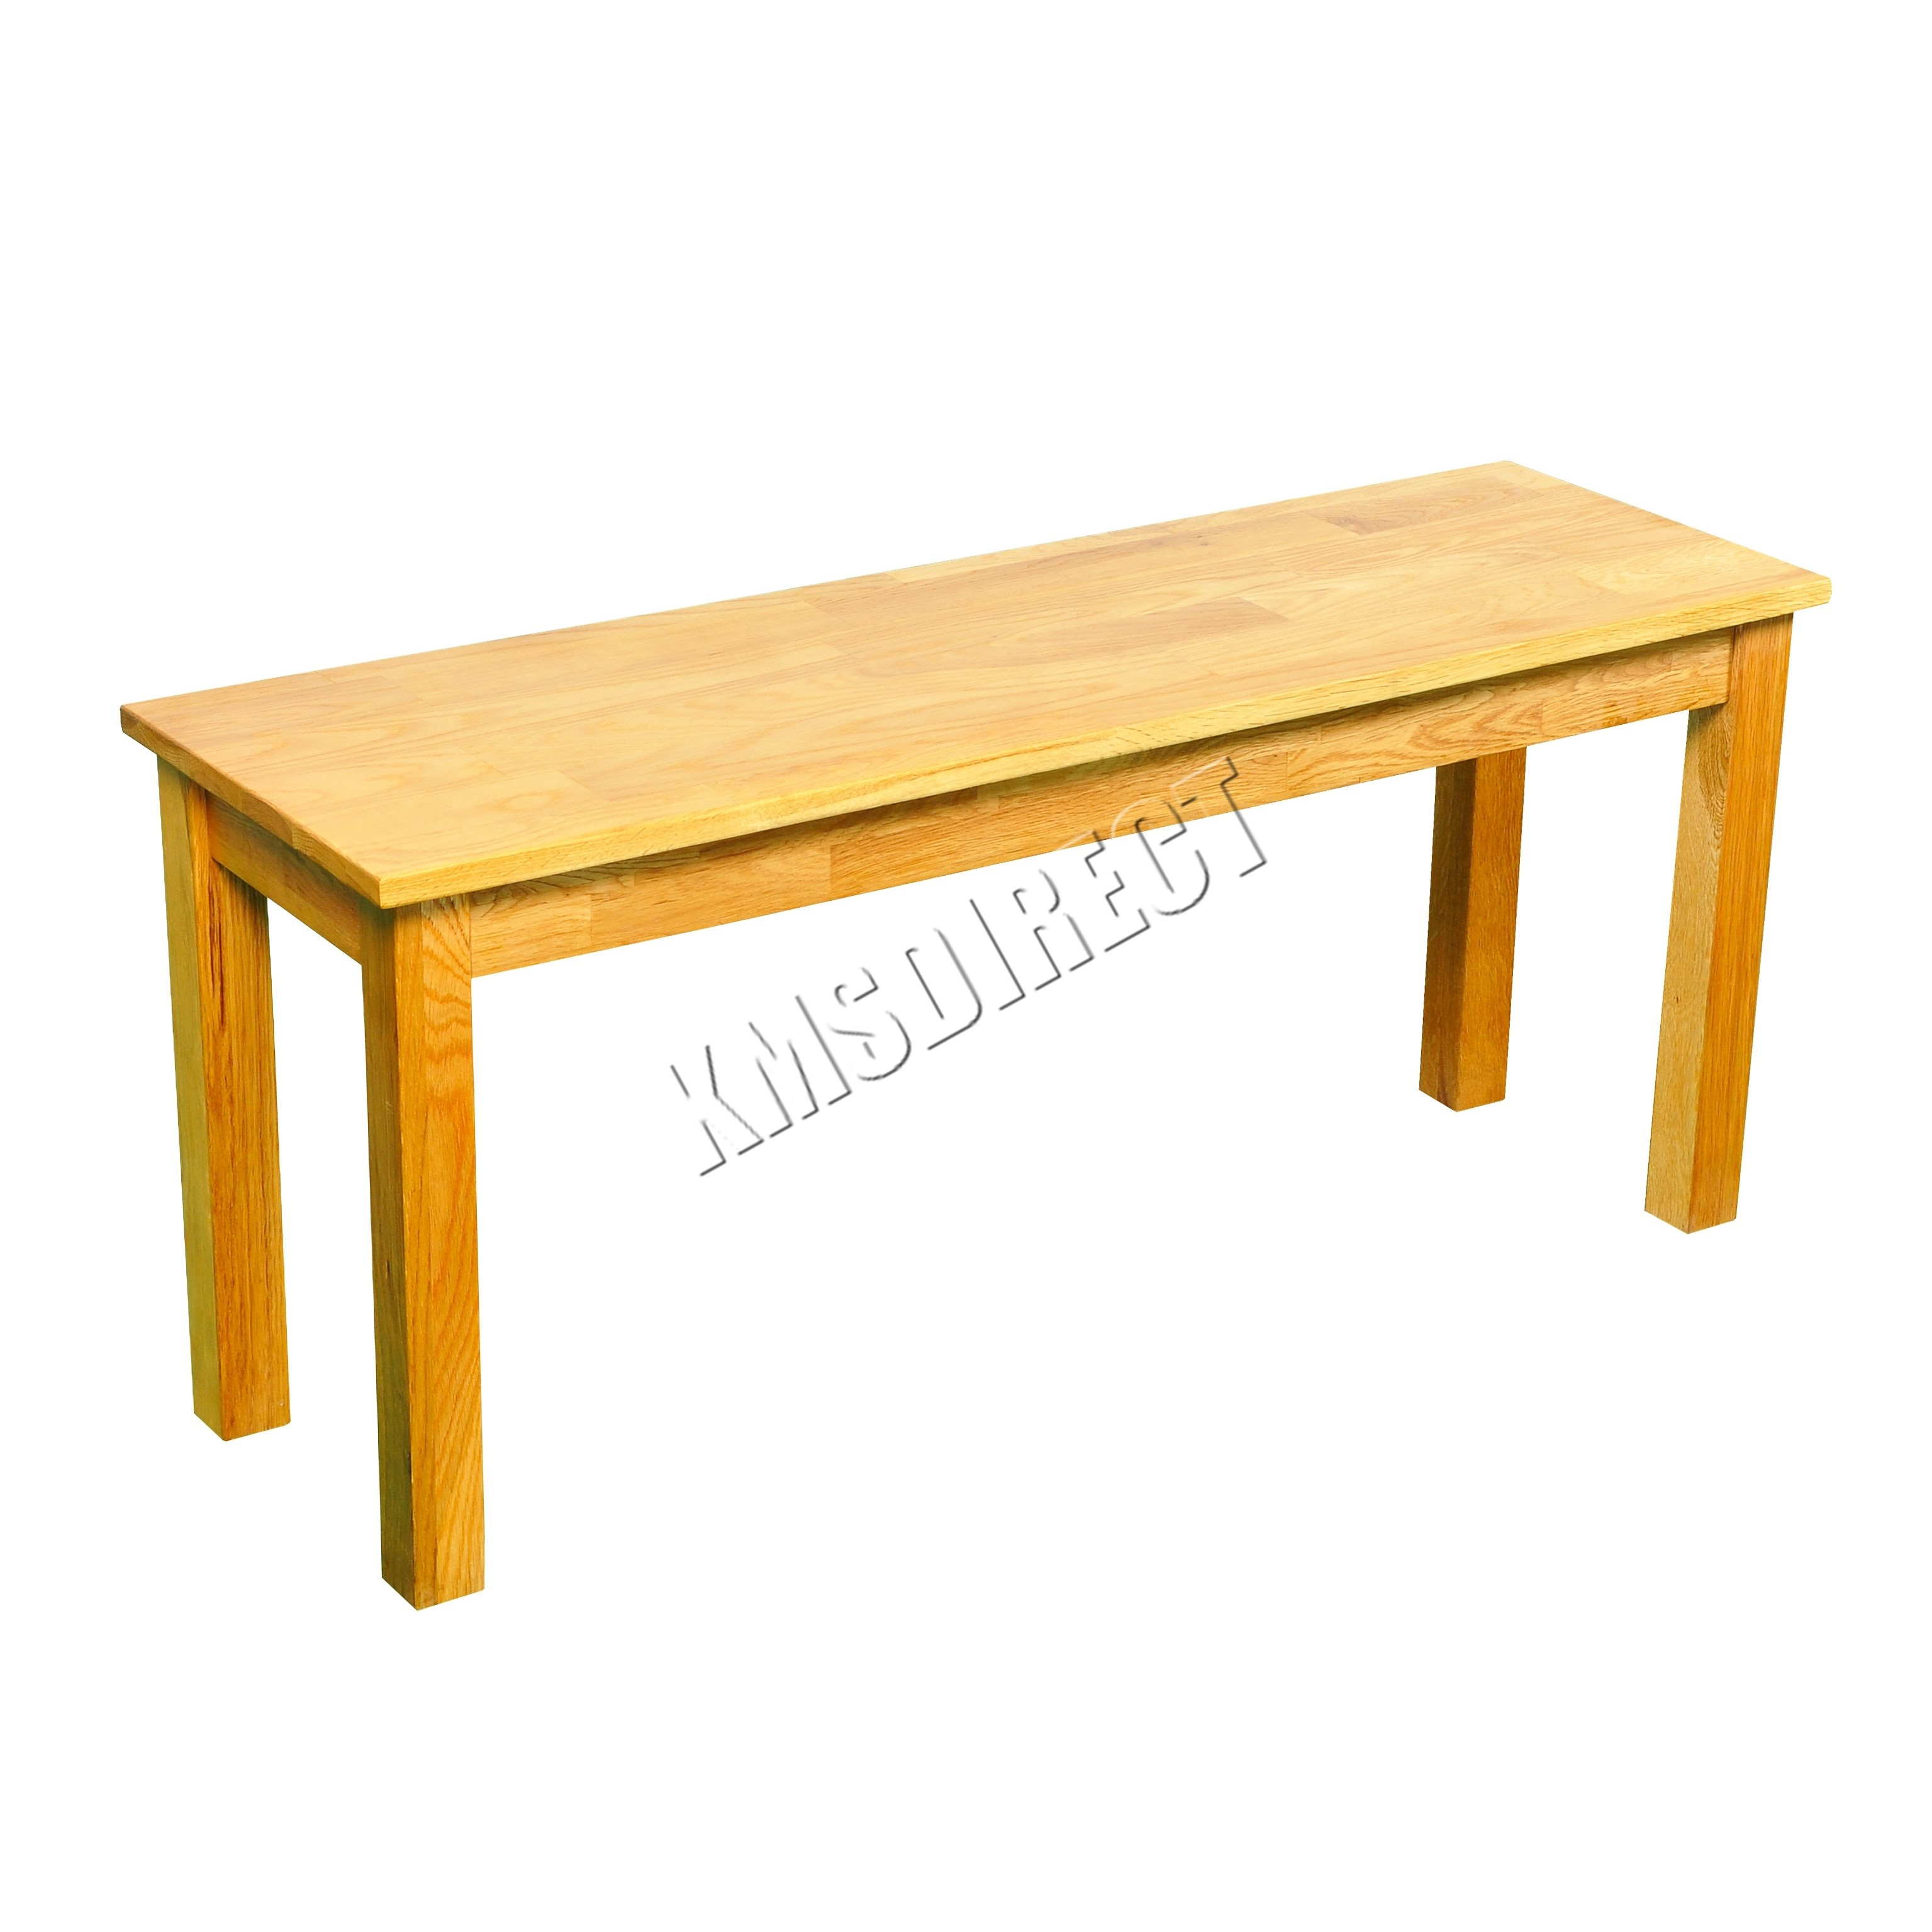 Foxhunter solid oak furniture dining bench wooden seat for Kitchen table bench seat